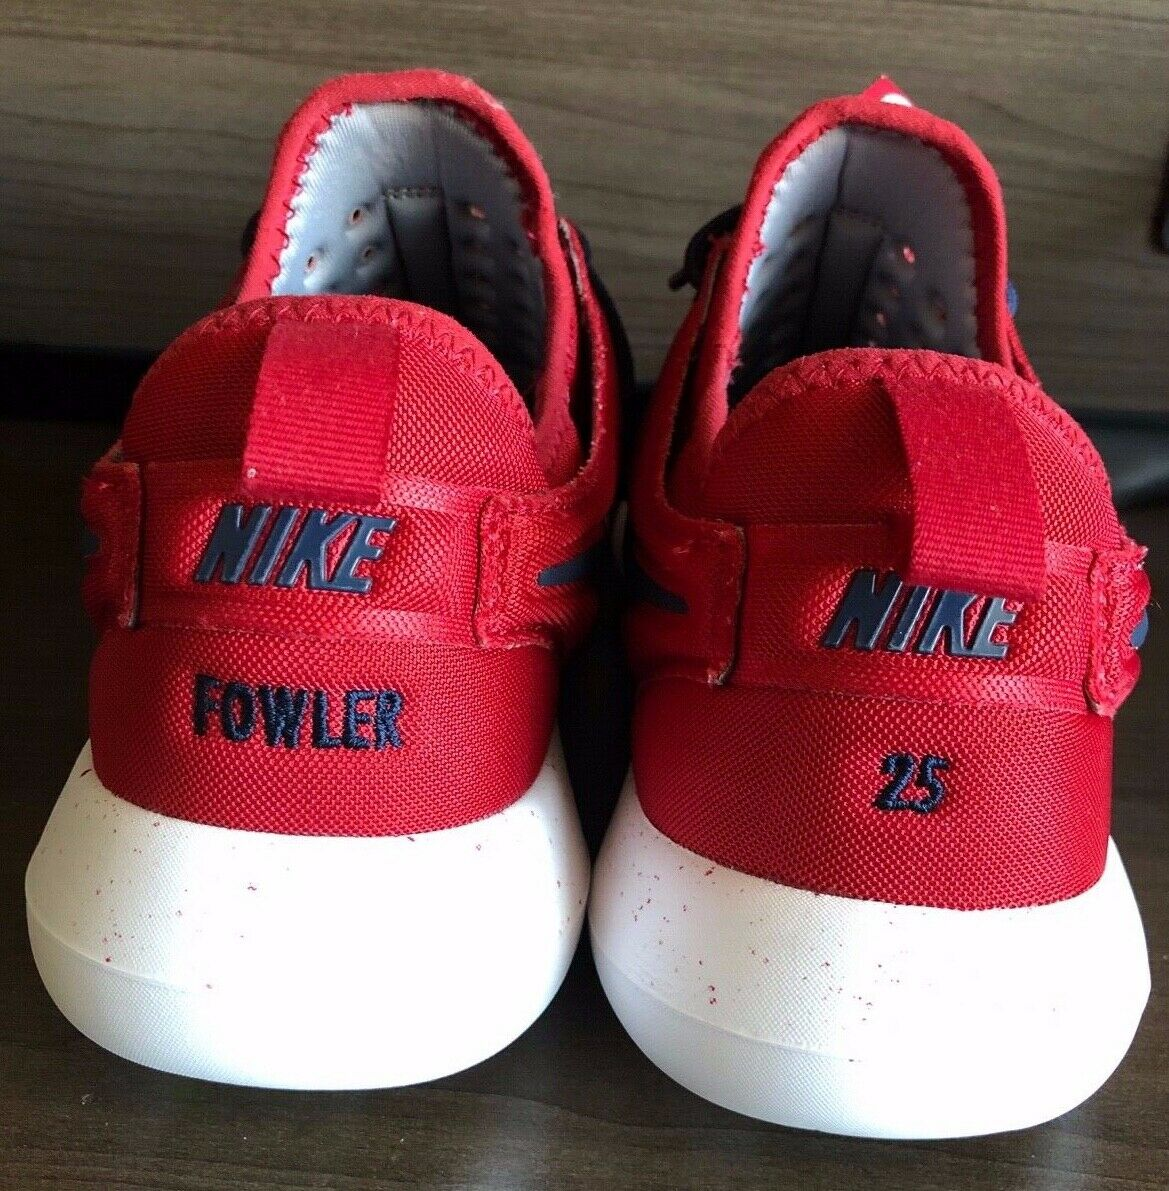 Dexter Fowler 25 Embroidered NikeiD Women Size 8 Red bluee White 897153-991